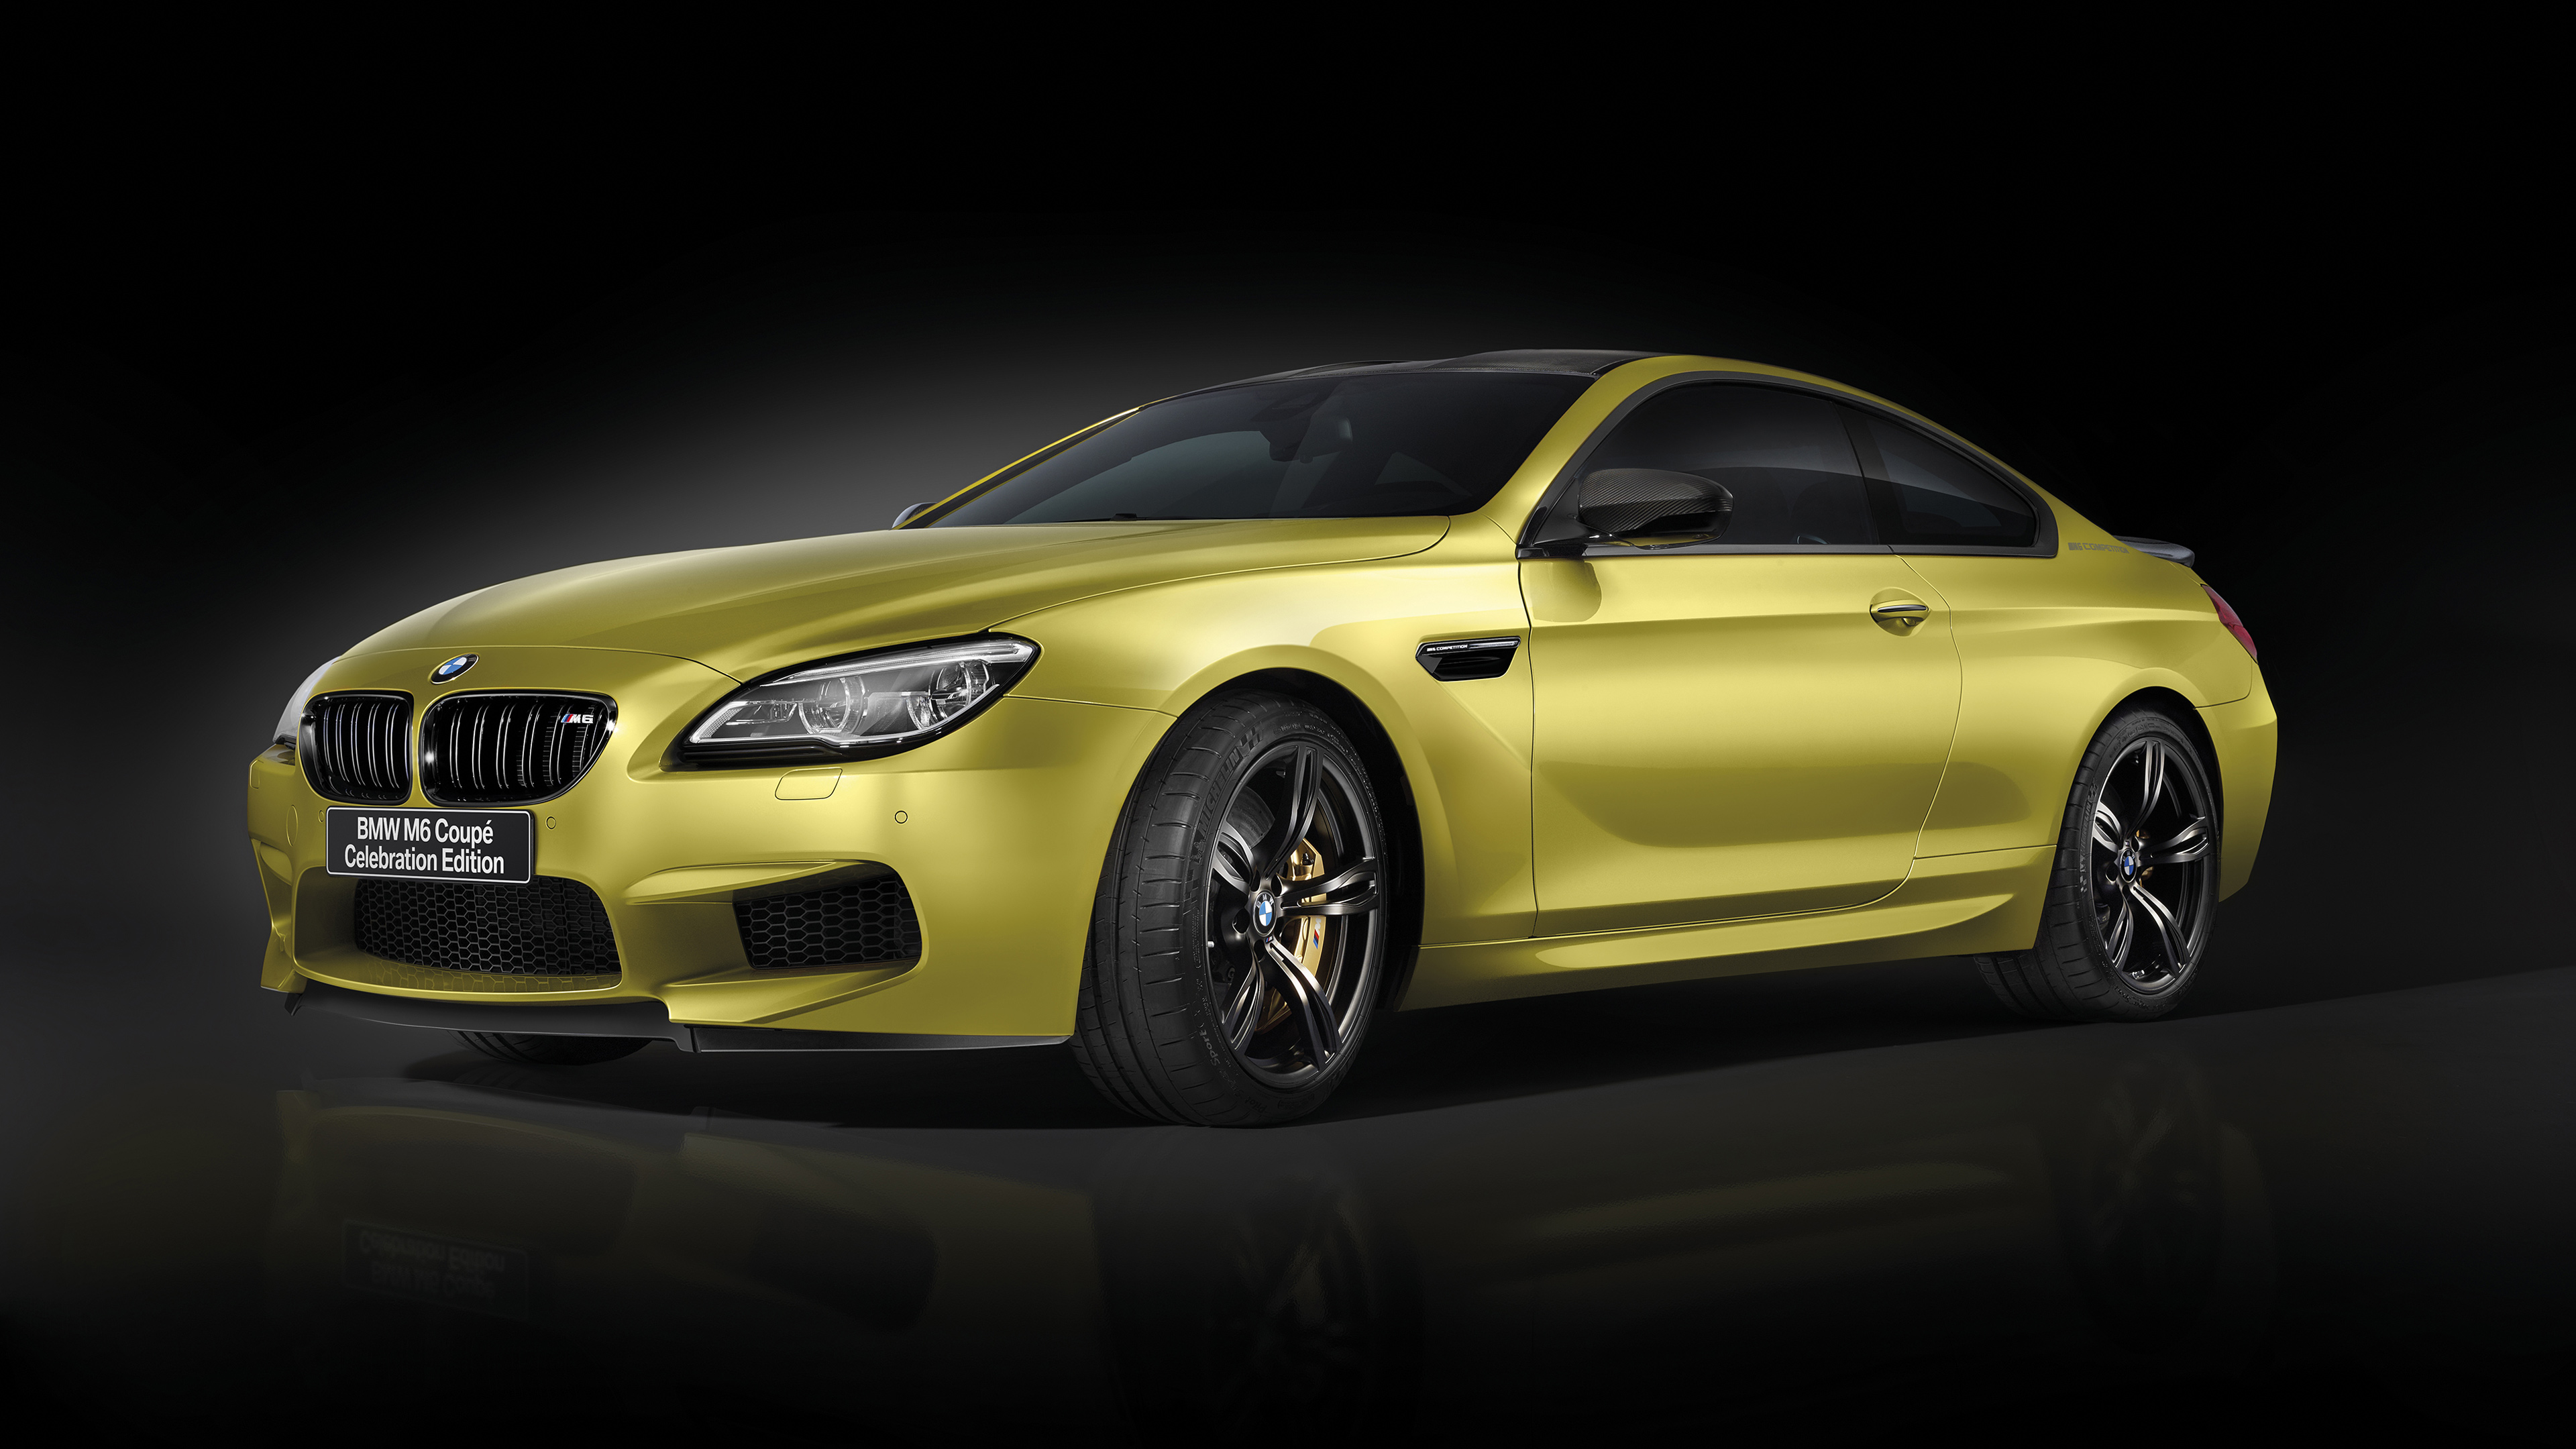 BMW M Coupe Celebration Edition wallpaper